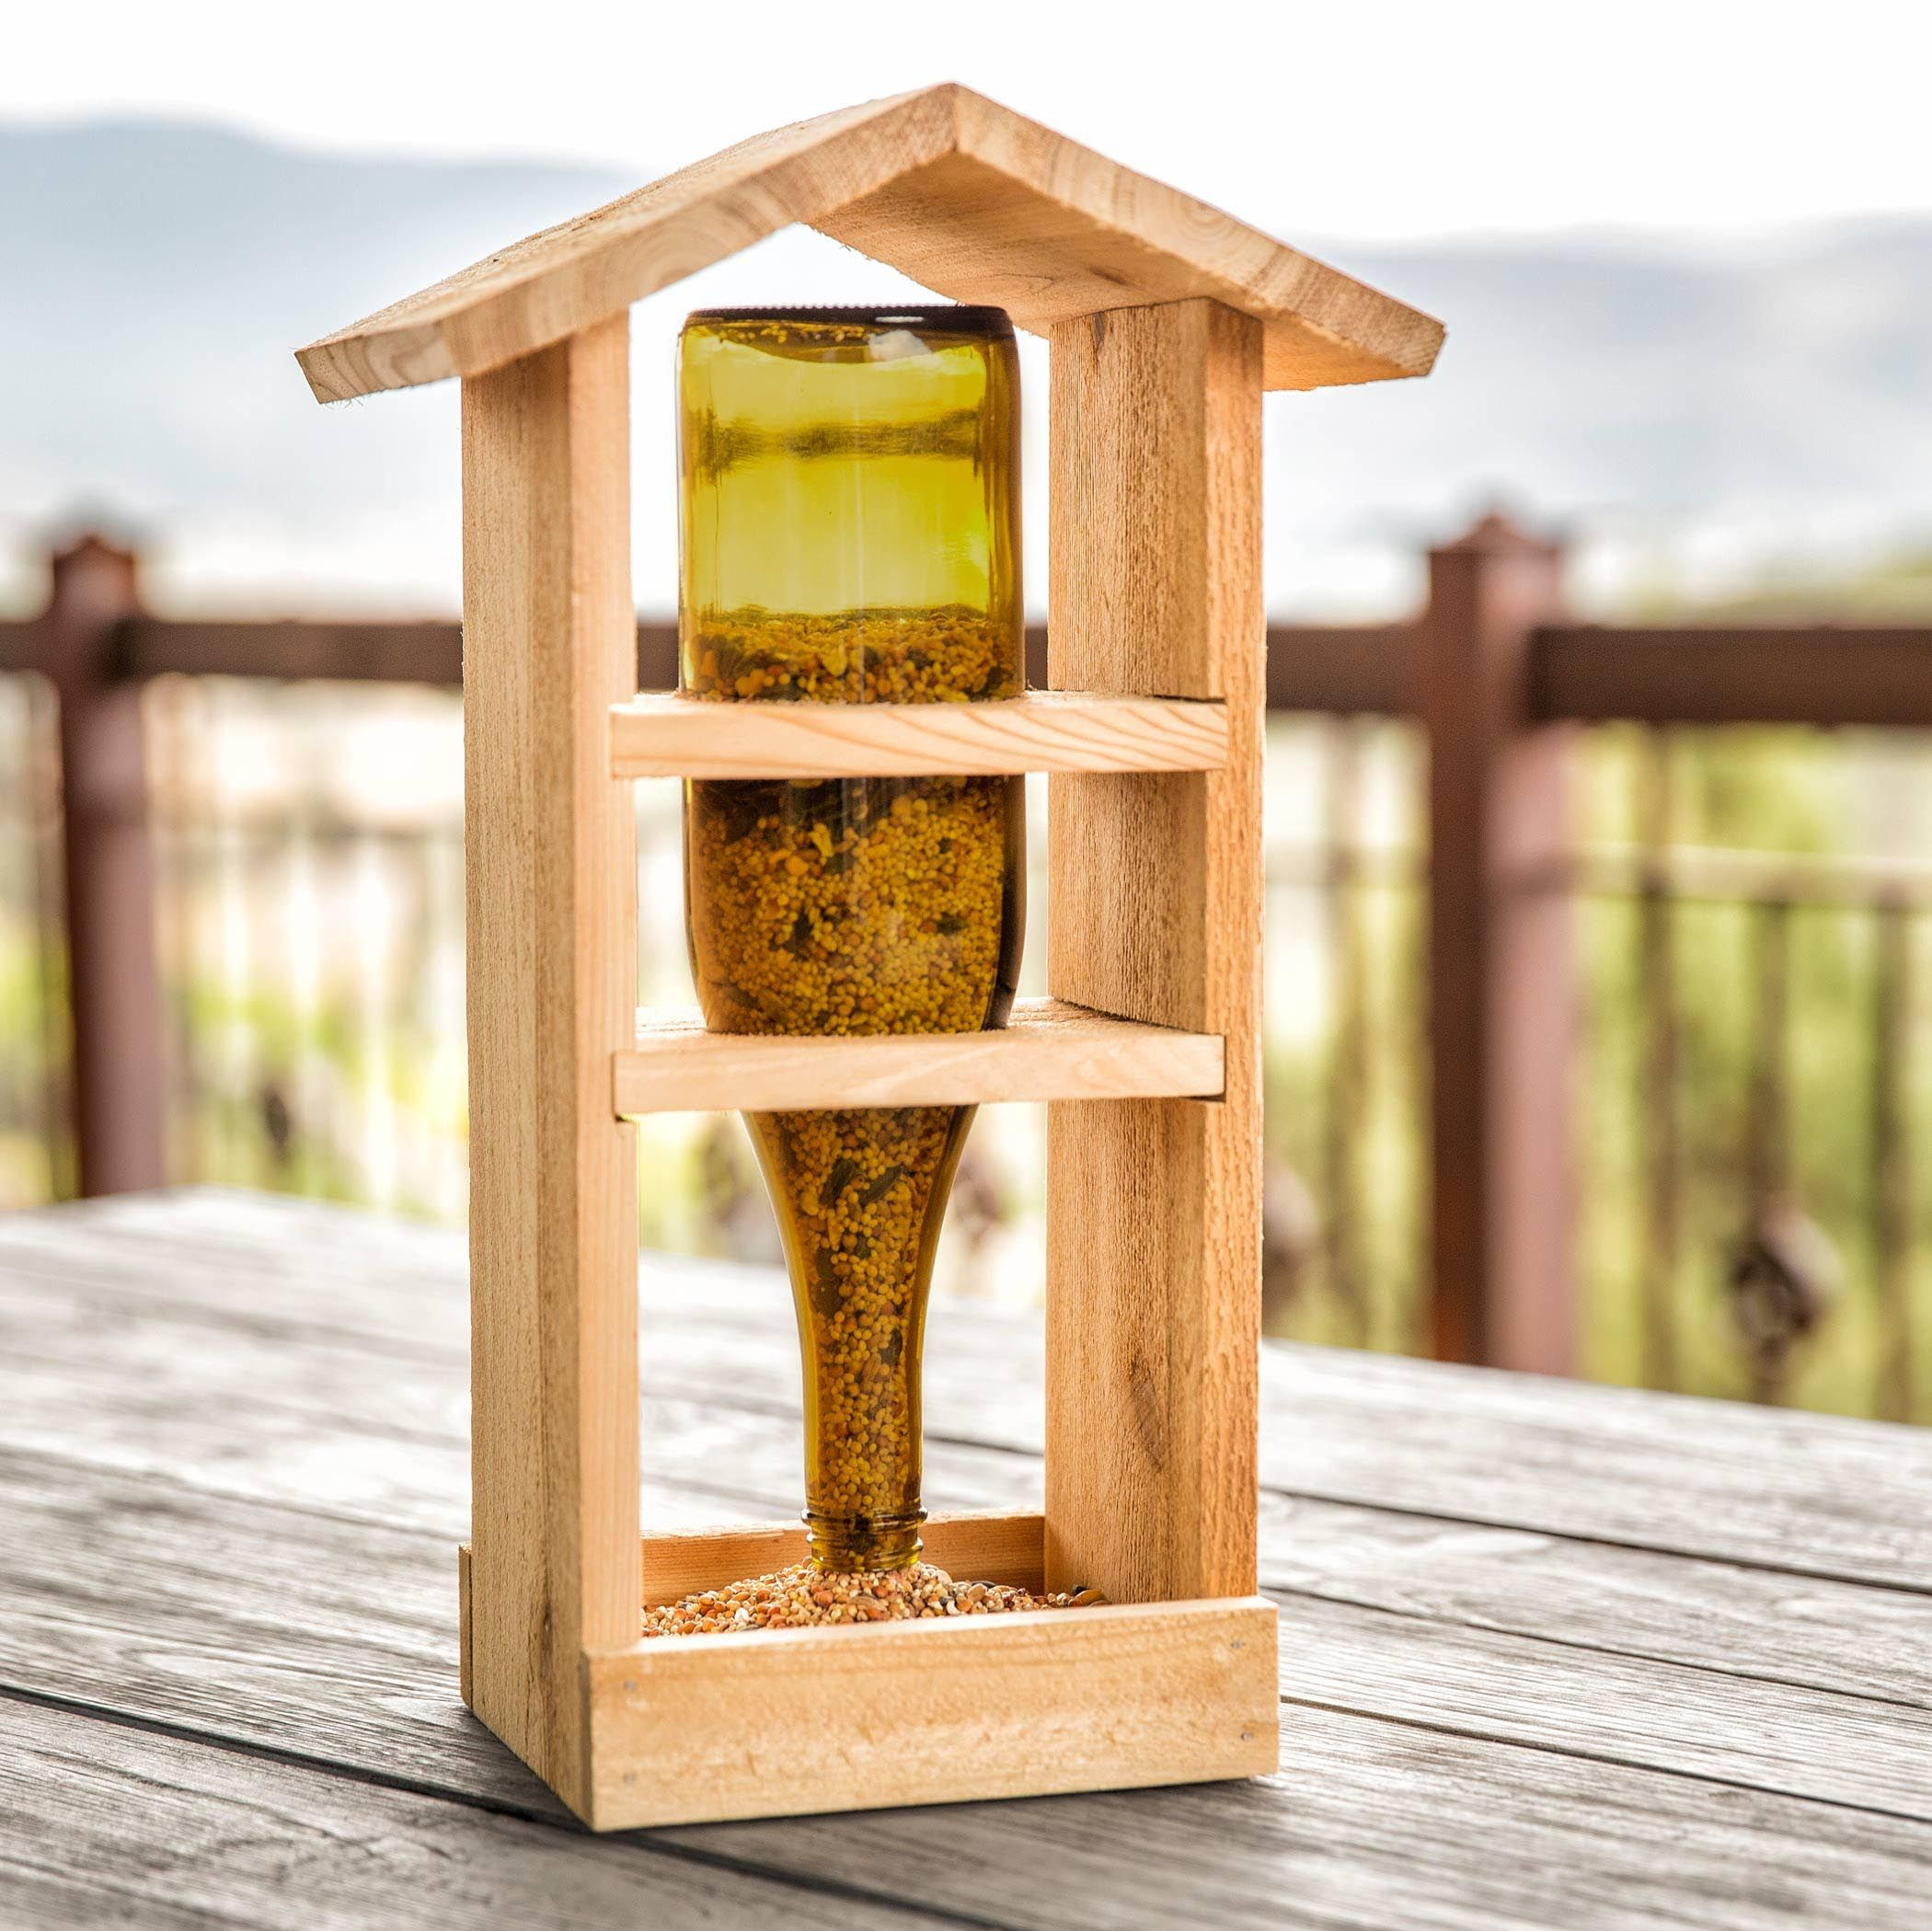 Homemade wooden bird feeders bird feeders pinterest for How to make homemade bird houses